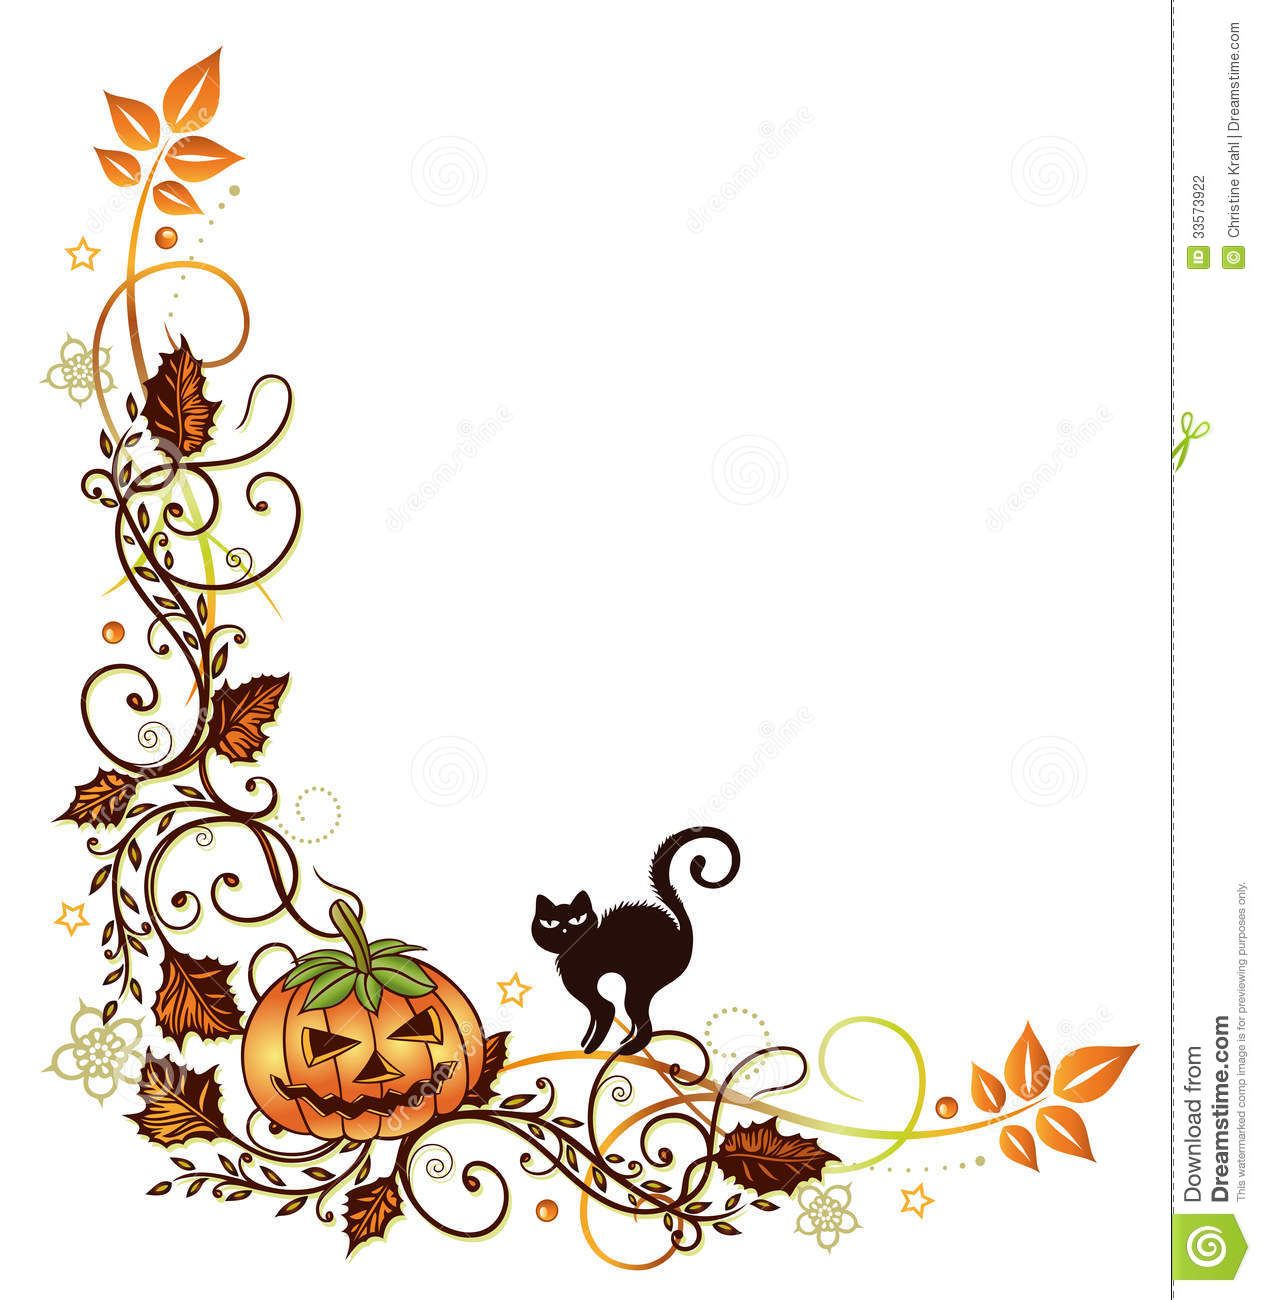 hight resolution of halloween border clipart free large images